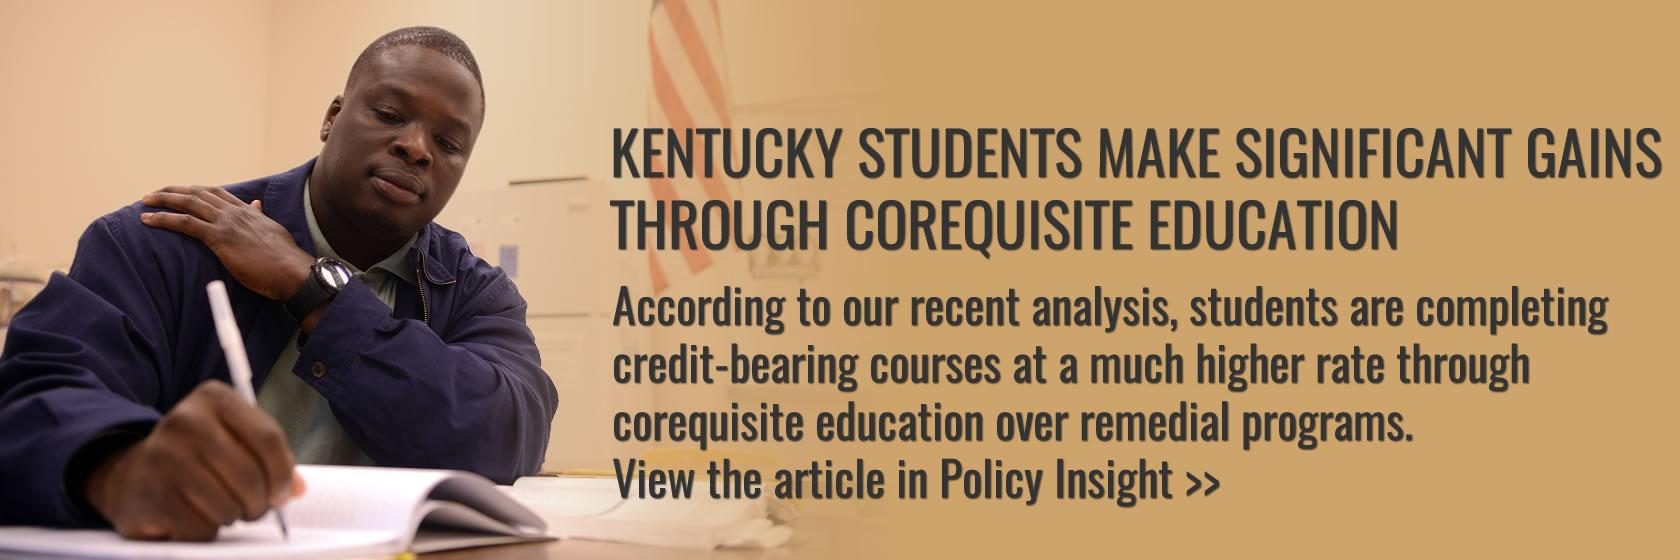 View Kentucky's student success gains through corequisite education programs at Kentucky's comprehensive universities and KCTCS.